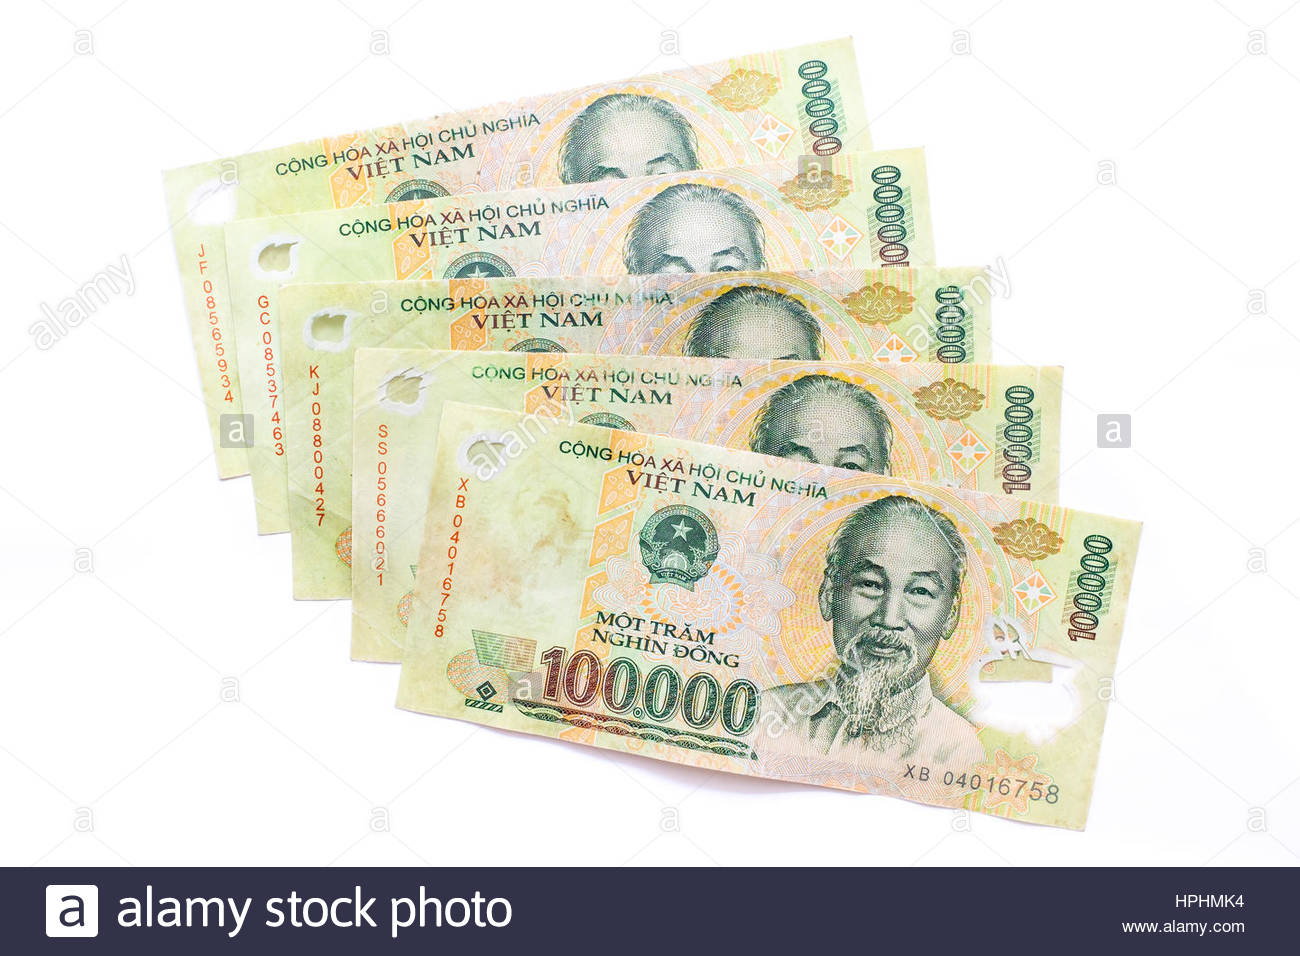 Vietnamese Dong currency, 100,000 dong banknontes money - Stock Image